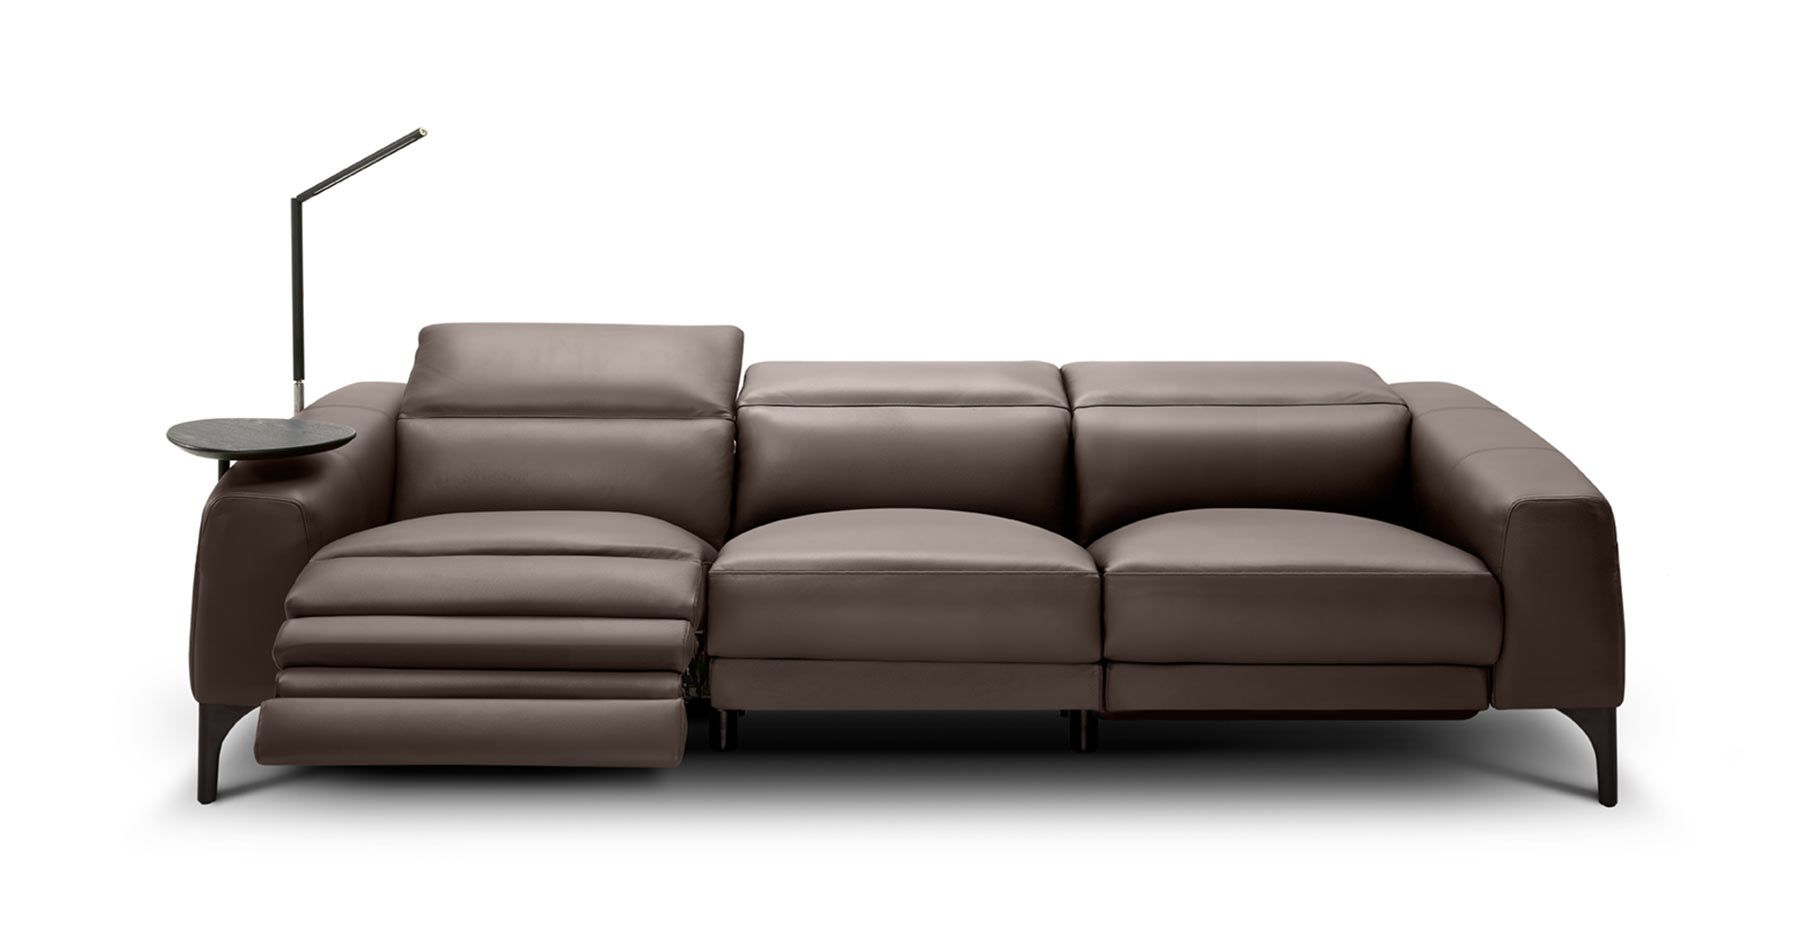 Reo Recliner Luxurious Recliner Sofa Lounge Couch King